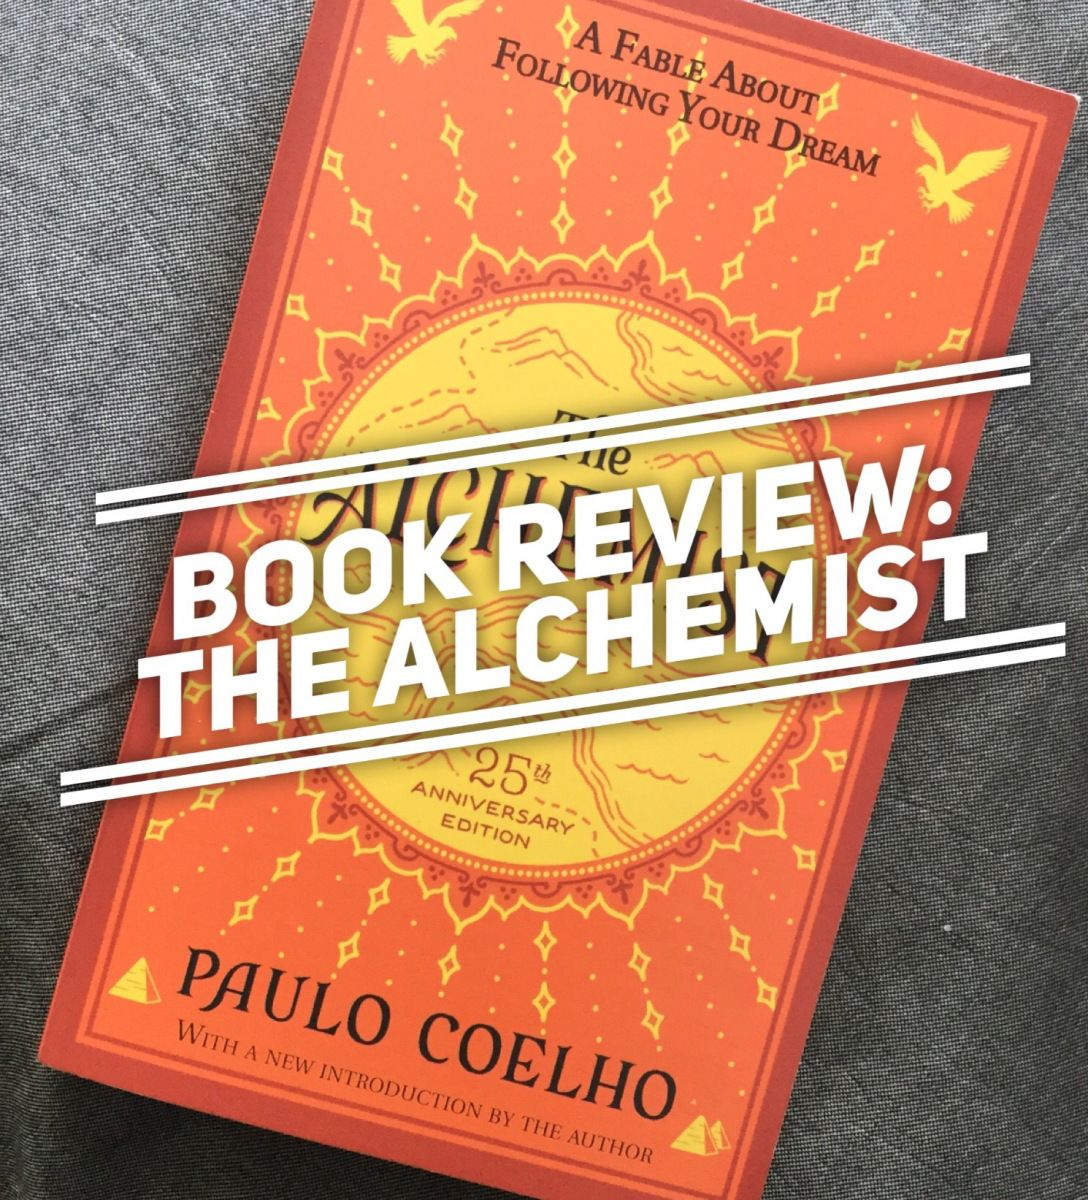 book review the alchemist by paul coelho book review  book review the alchemist by paul coelho